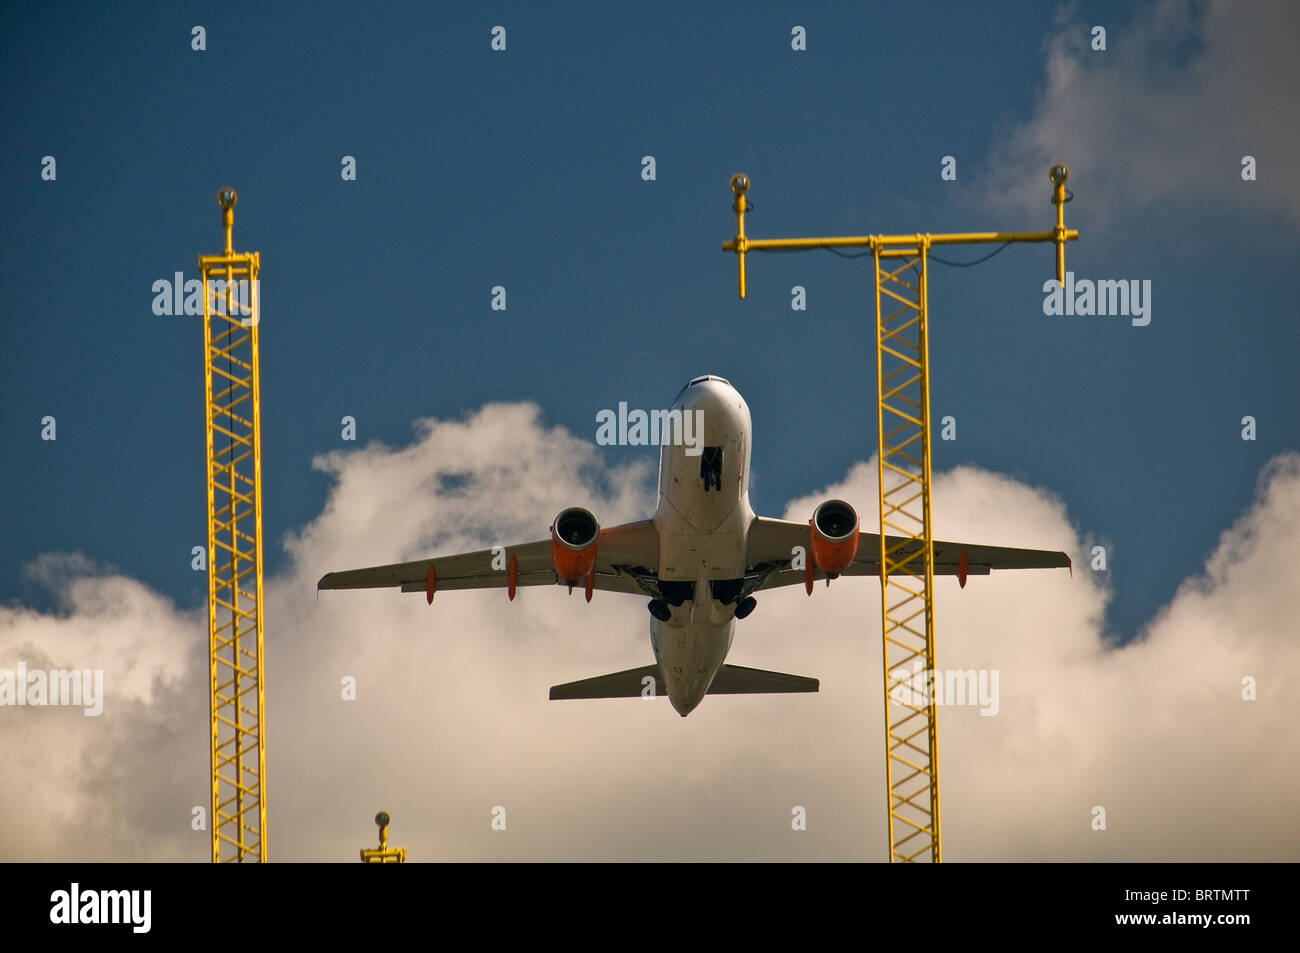 Jet aircraft taking off from Bristol Airport, UK - Stock Image